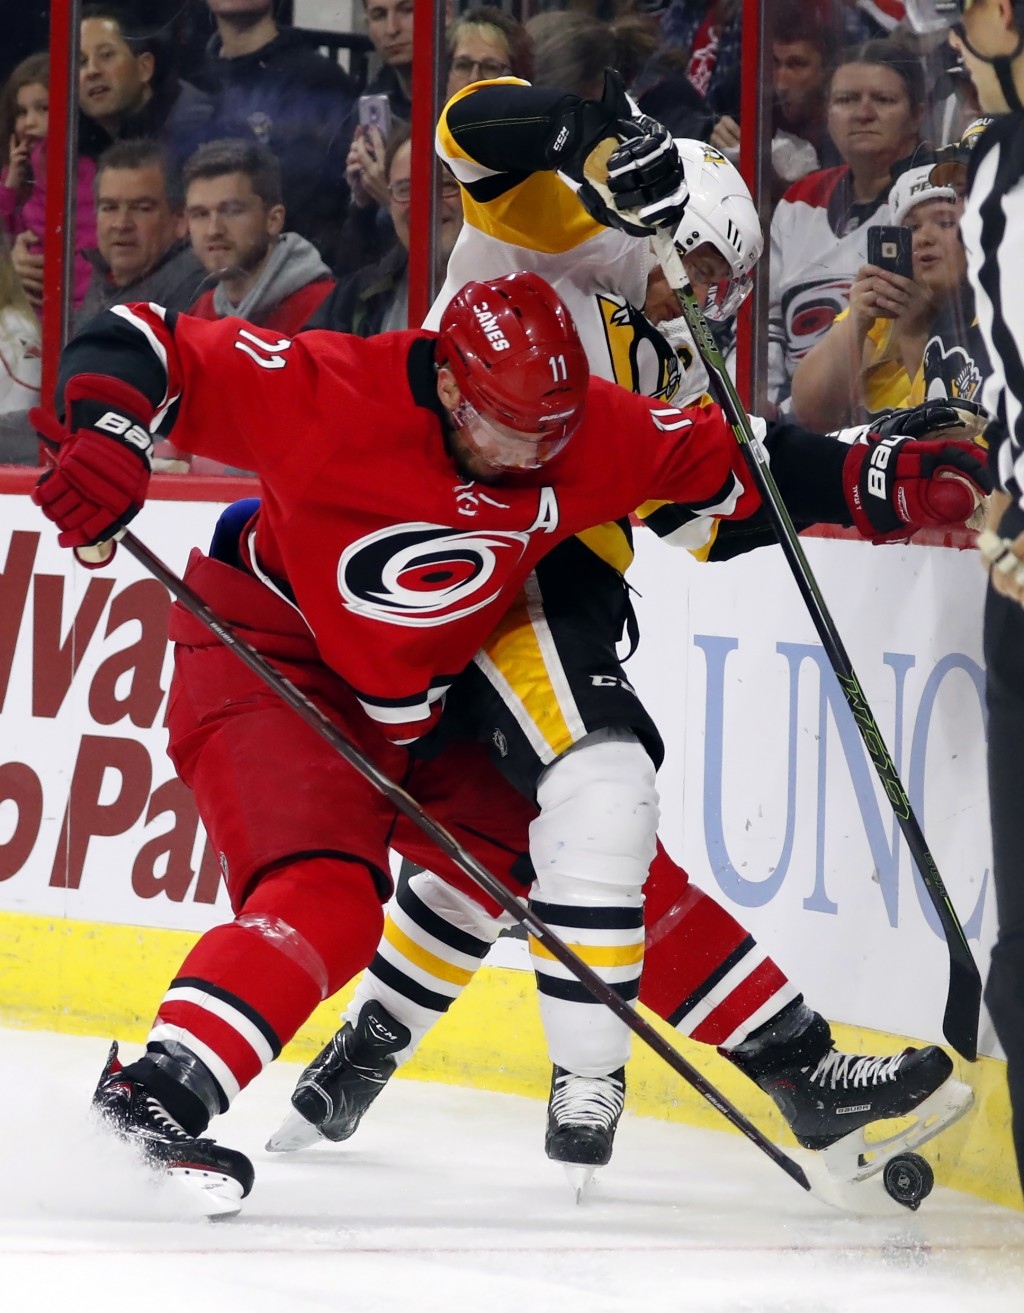 Carolina Hurricanes' Jordan Staal (11) tussles with Pittsburgh Penguins' Sidney Crosby (87) during the first period of an NHL hockey game, Saturday, D